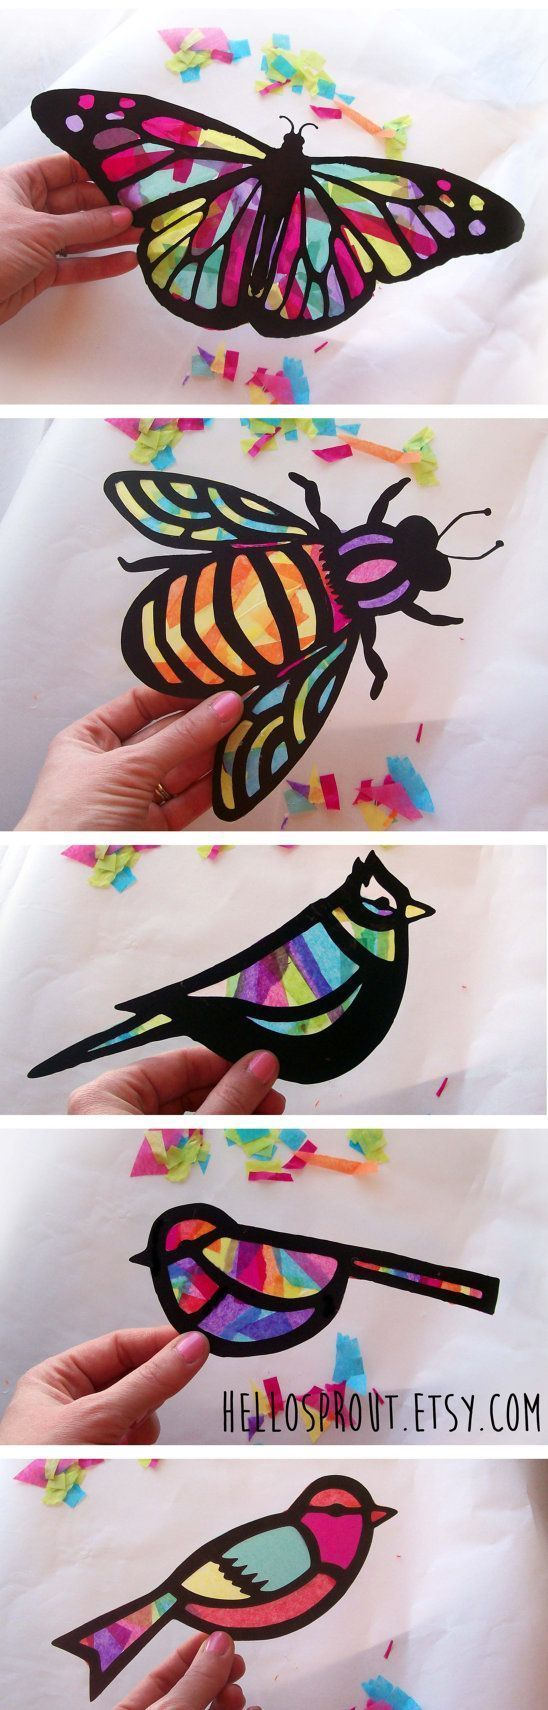 Kids Craft Butterfly Stained Glass Suncatcher Kit With Birds Bees